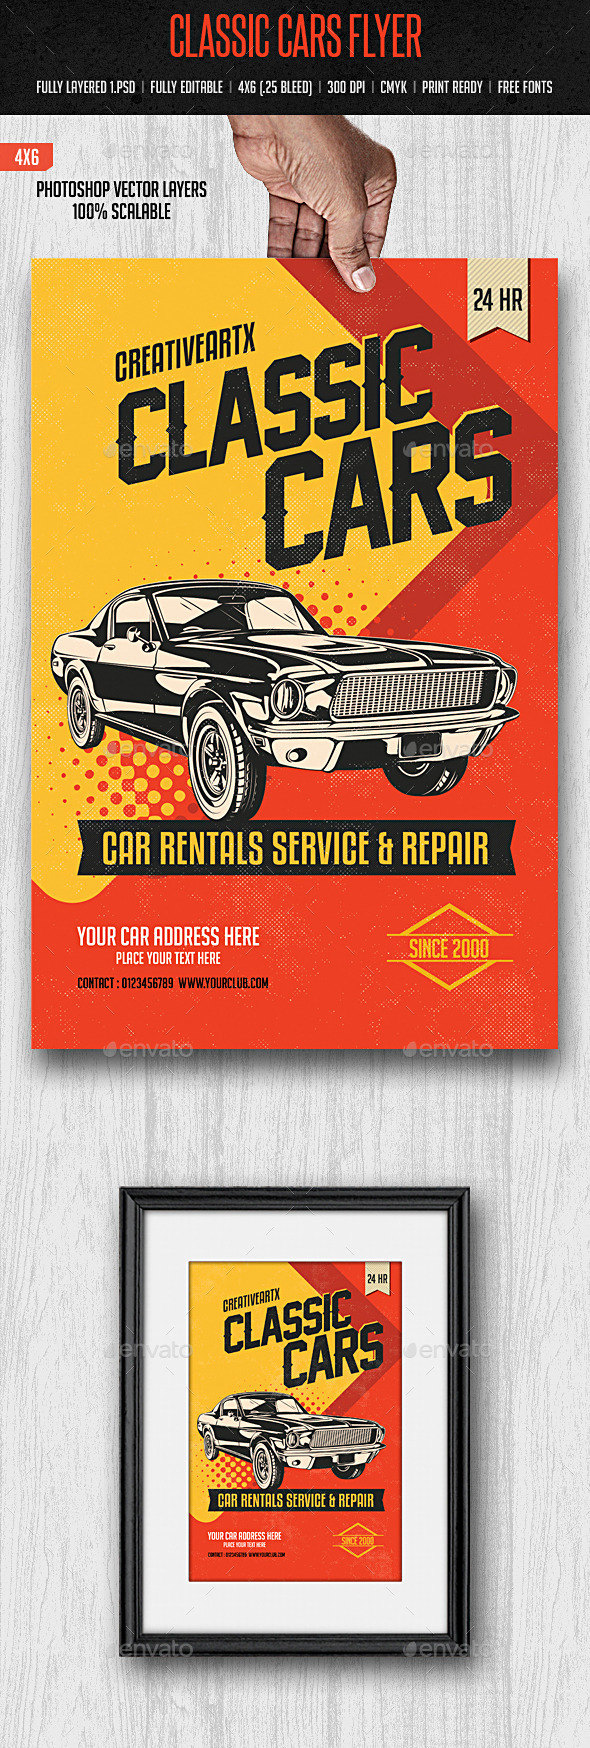 GraphicRiver Classic Cars Flyer 10308449